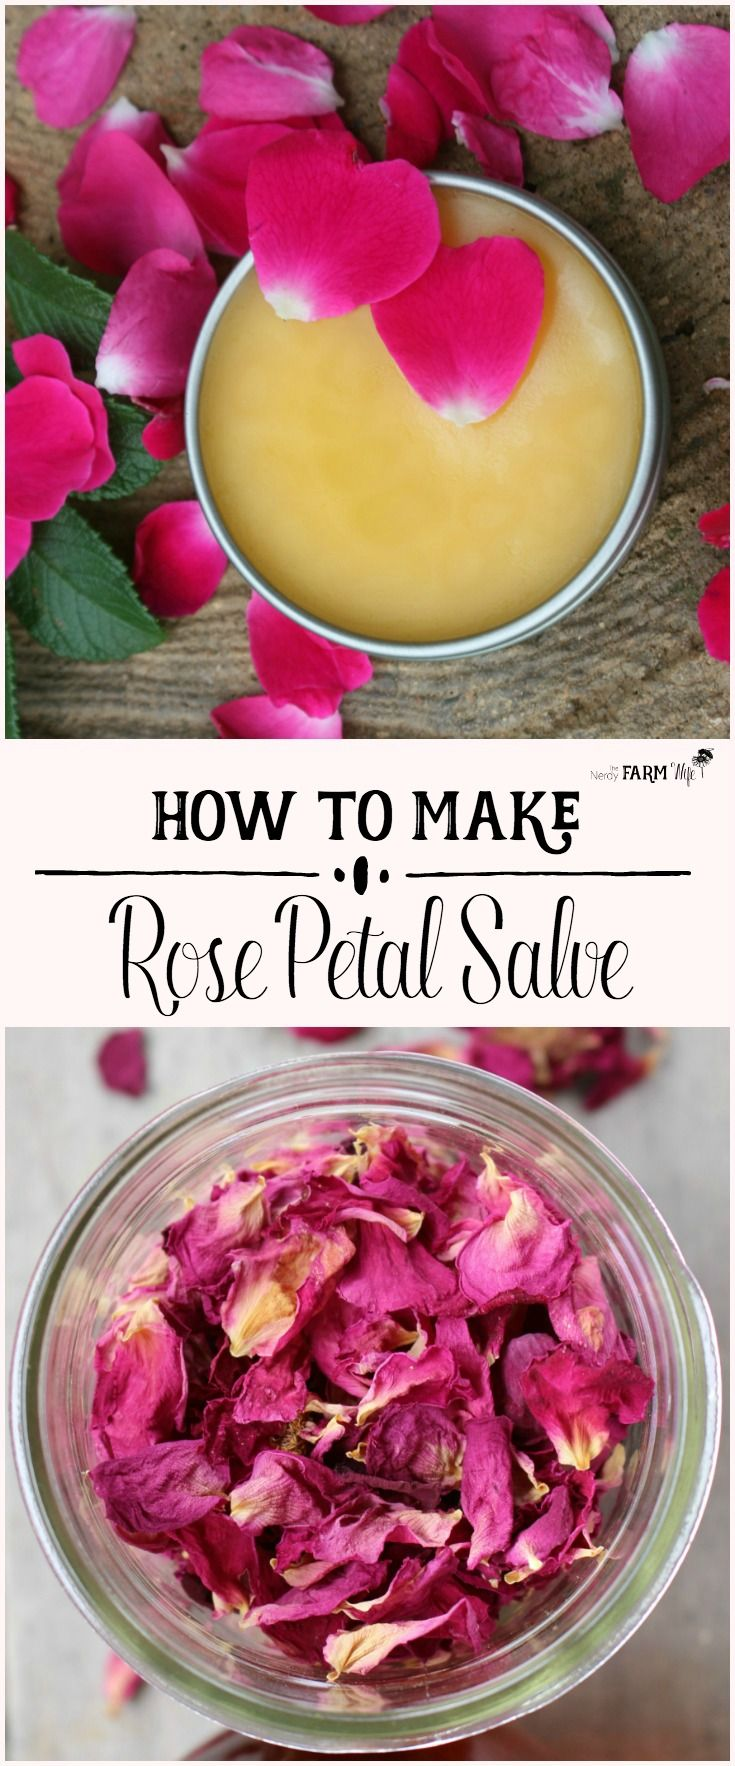 This rose petal salve recipe features real rose petals along with rosehip seed oil, which is well known for its benefits when applied to mature, sun-damaged, dry and irritated skin.